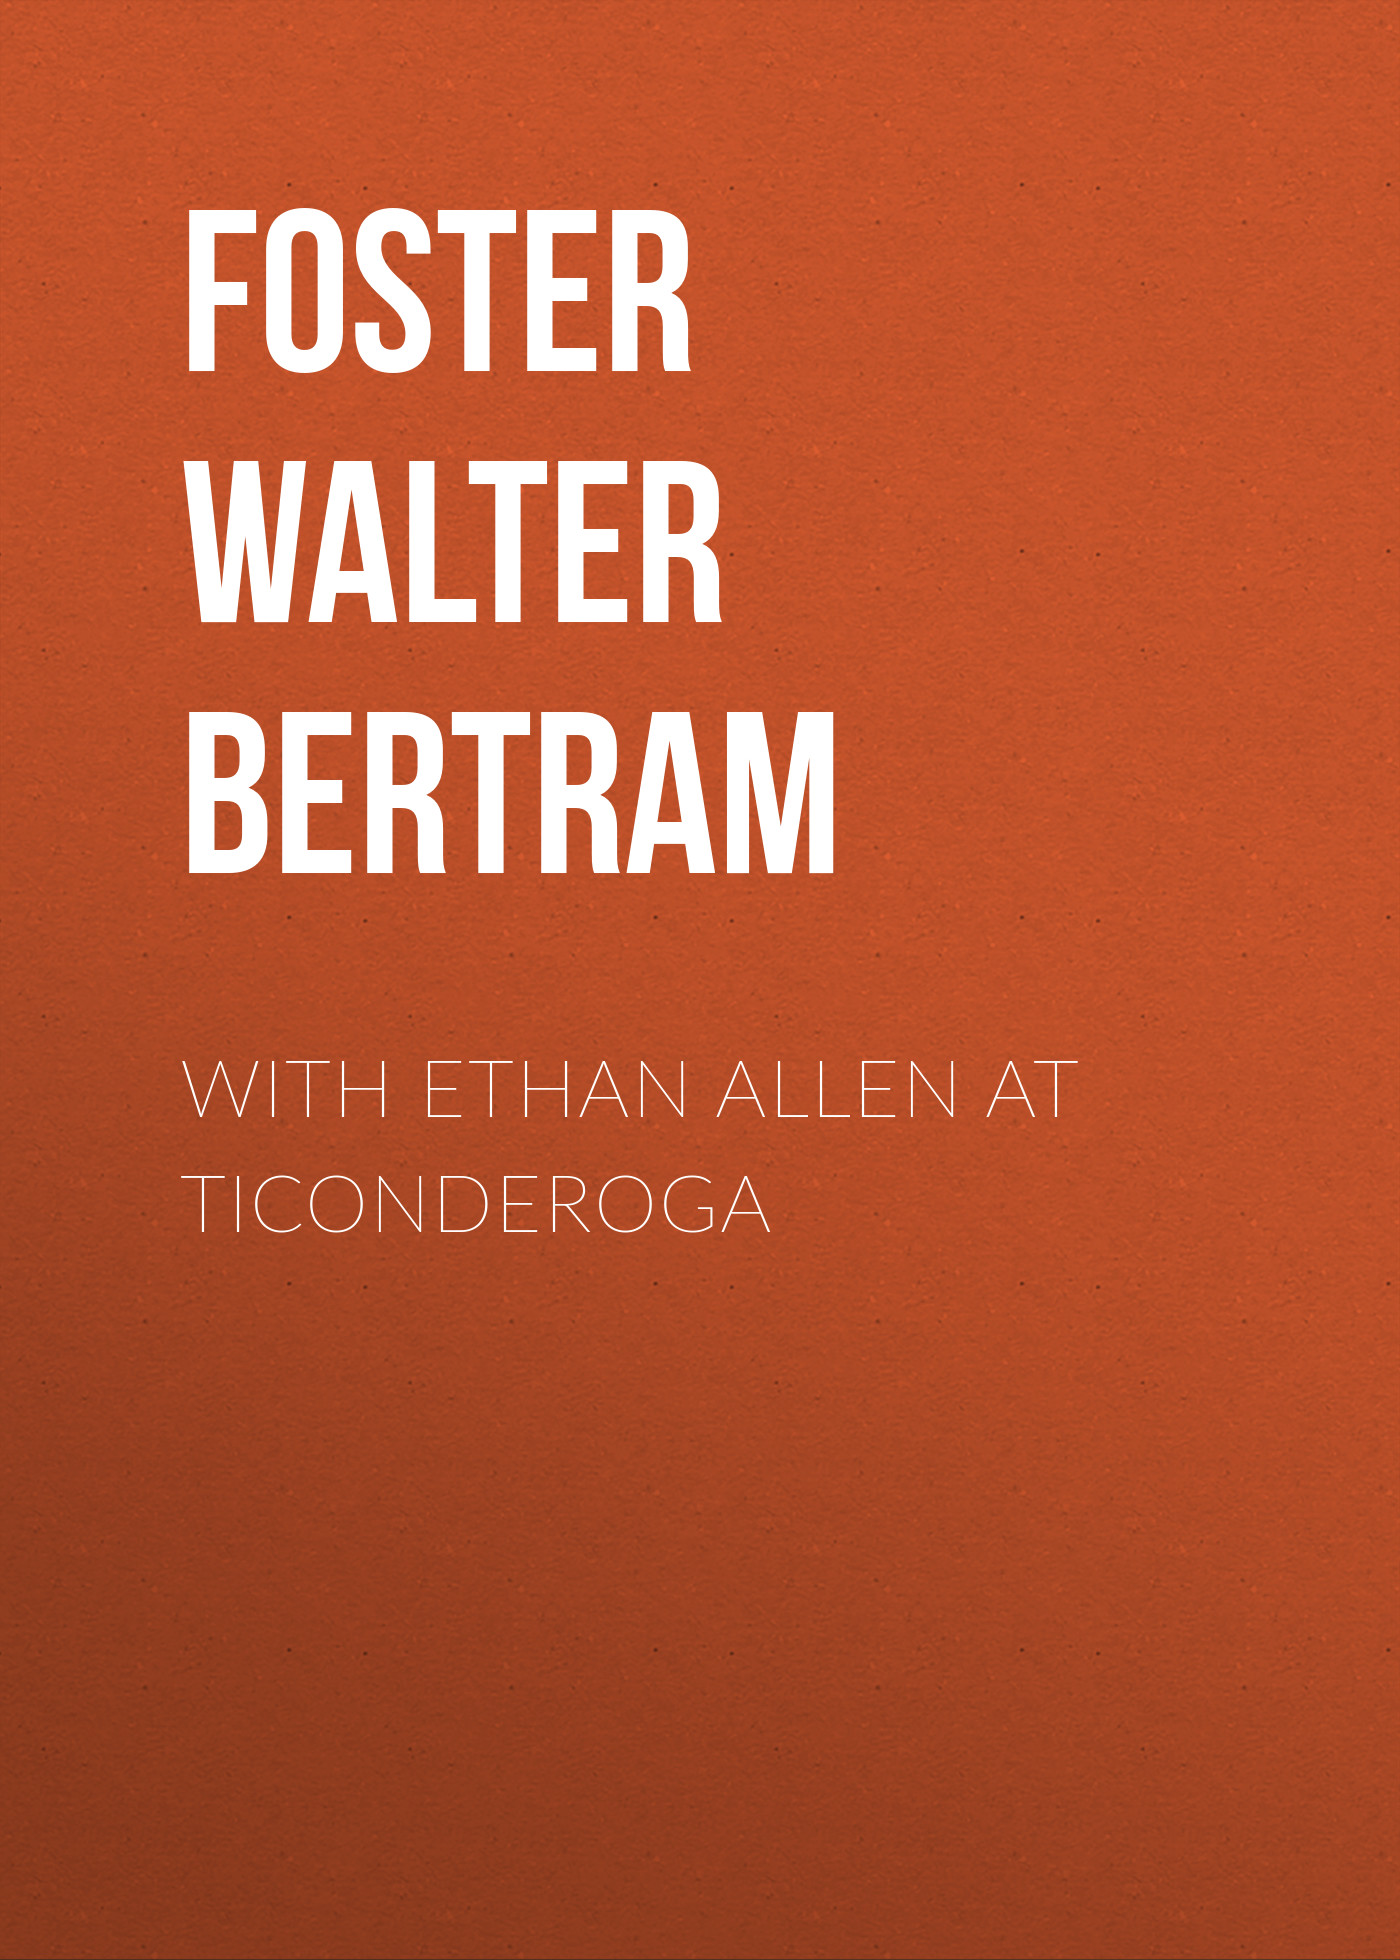 Foster Walter Bertram With Ethan Allen at Ticonderoga murder at bertram s bower